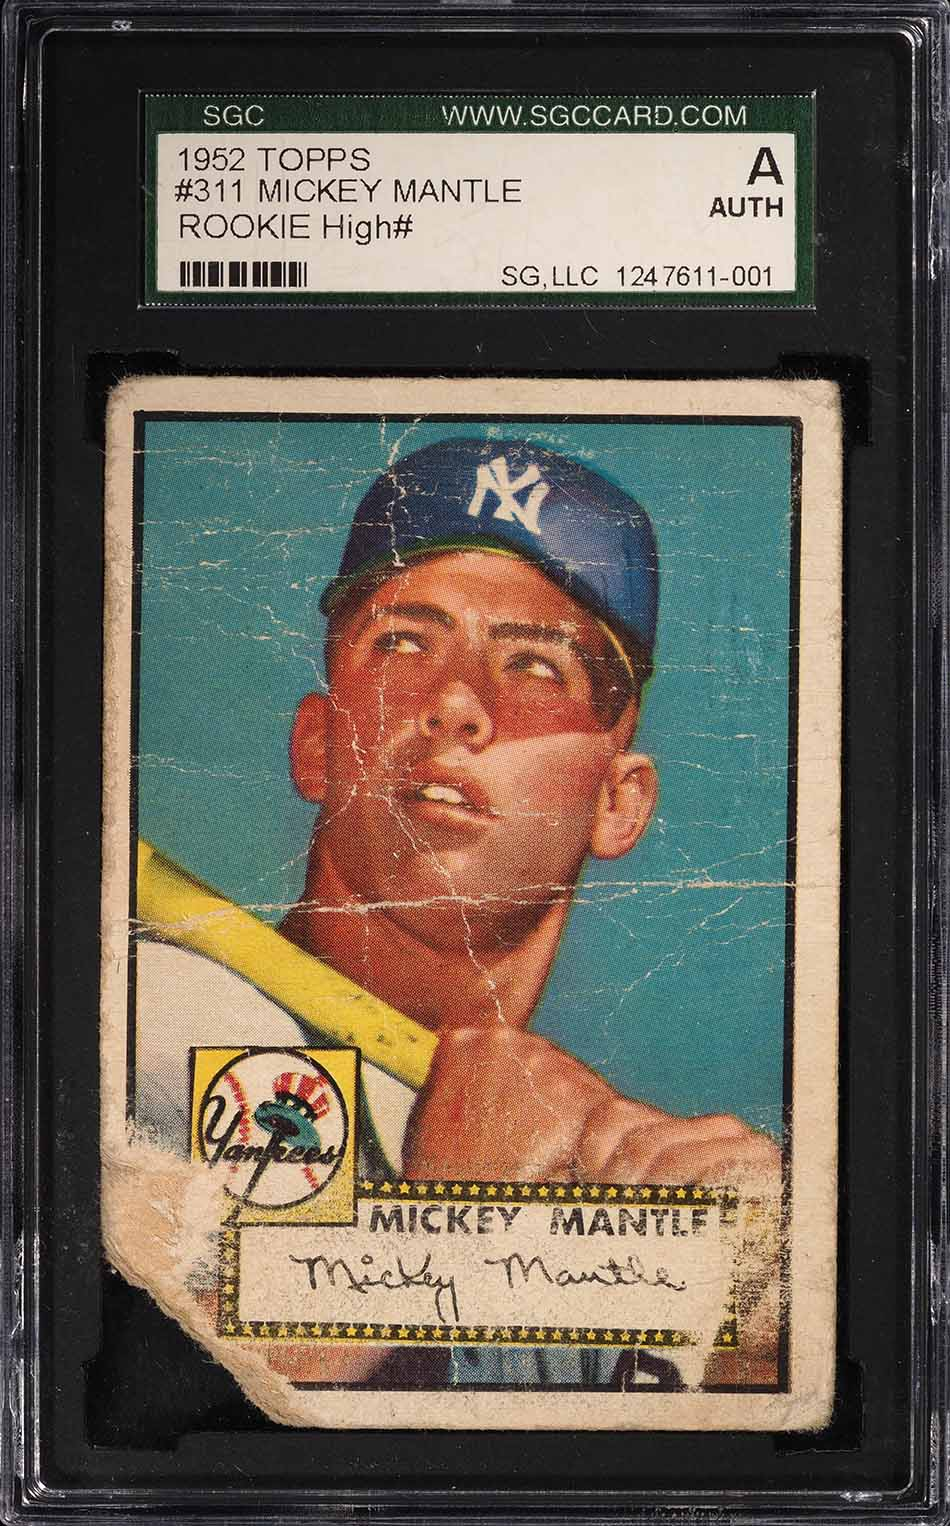 1952 Topps Mickey Mantle #311 SGC Auth (PWCC) - Image 1